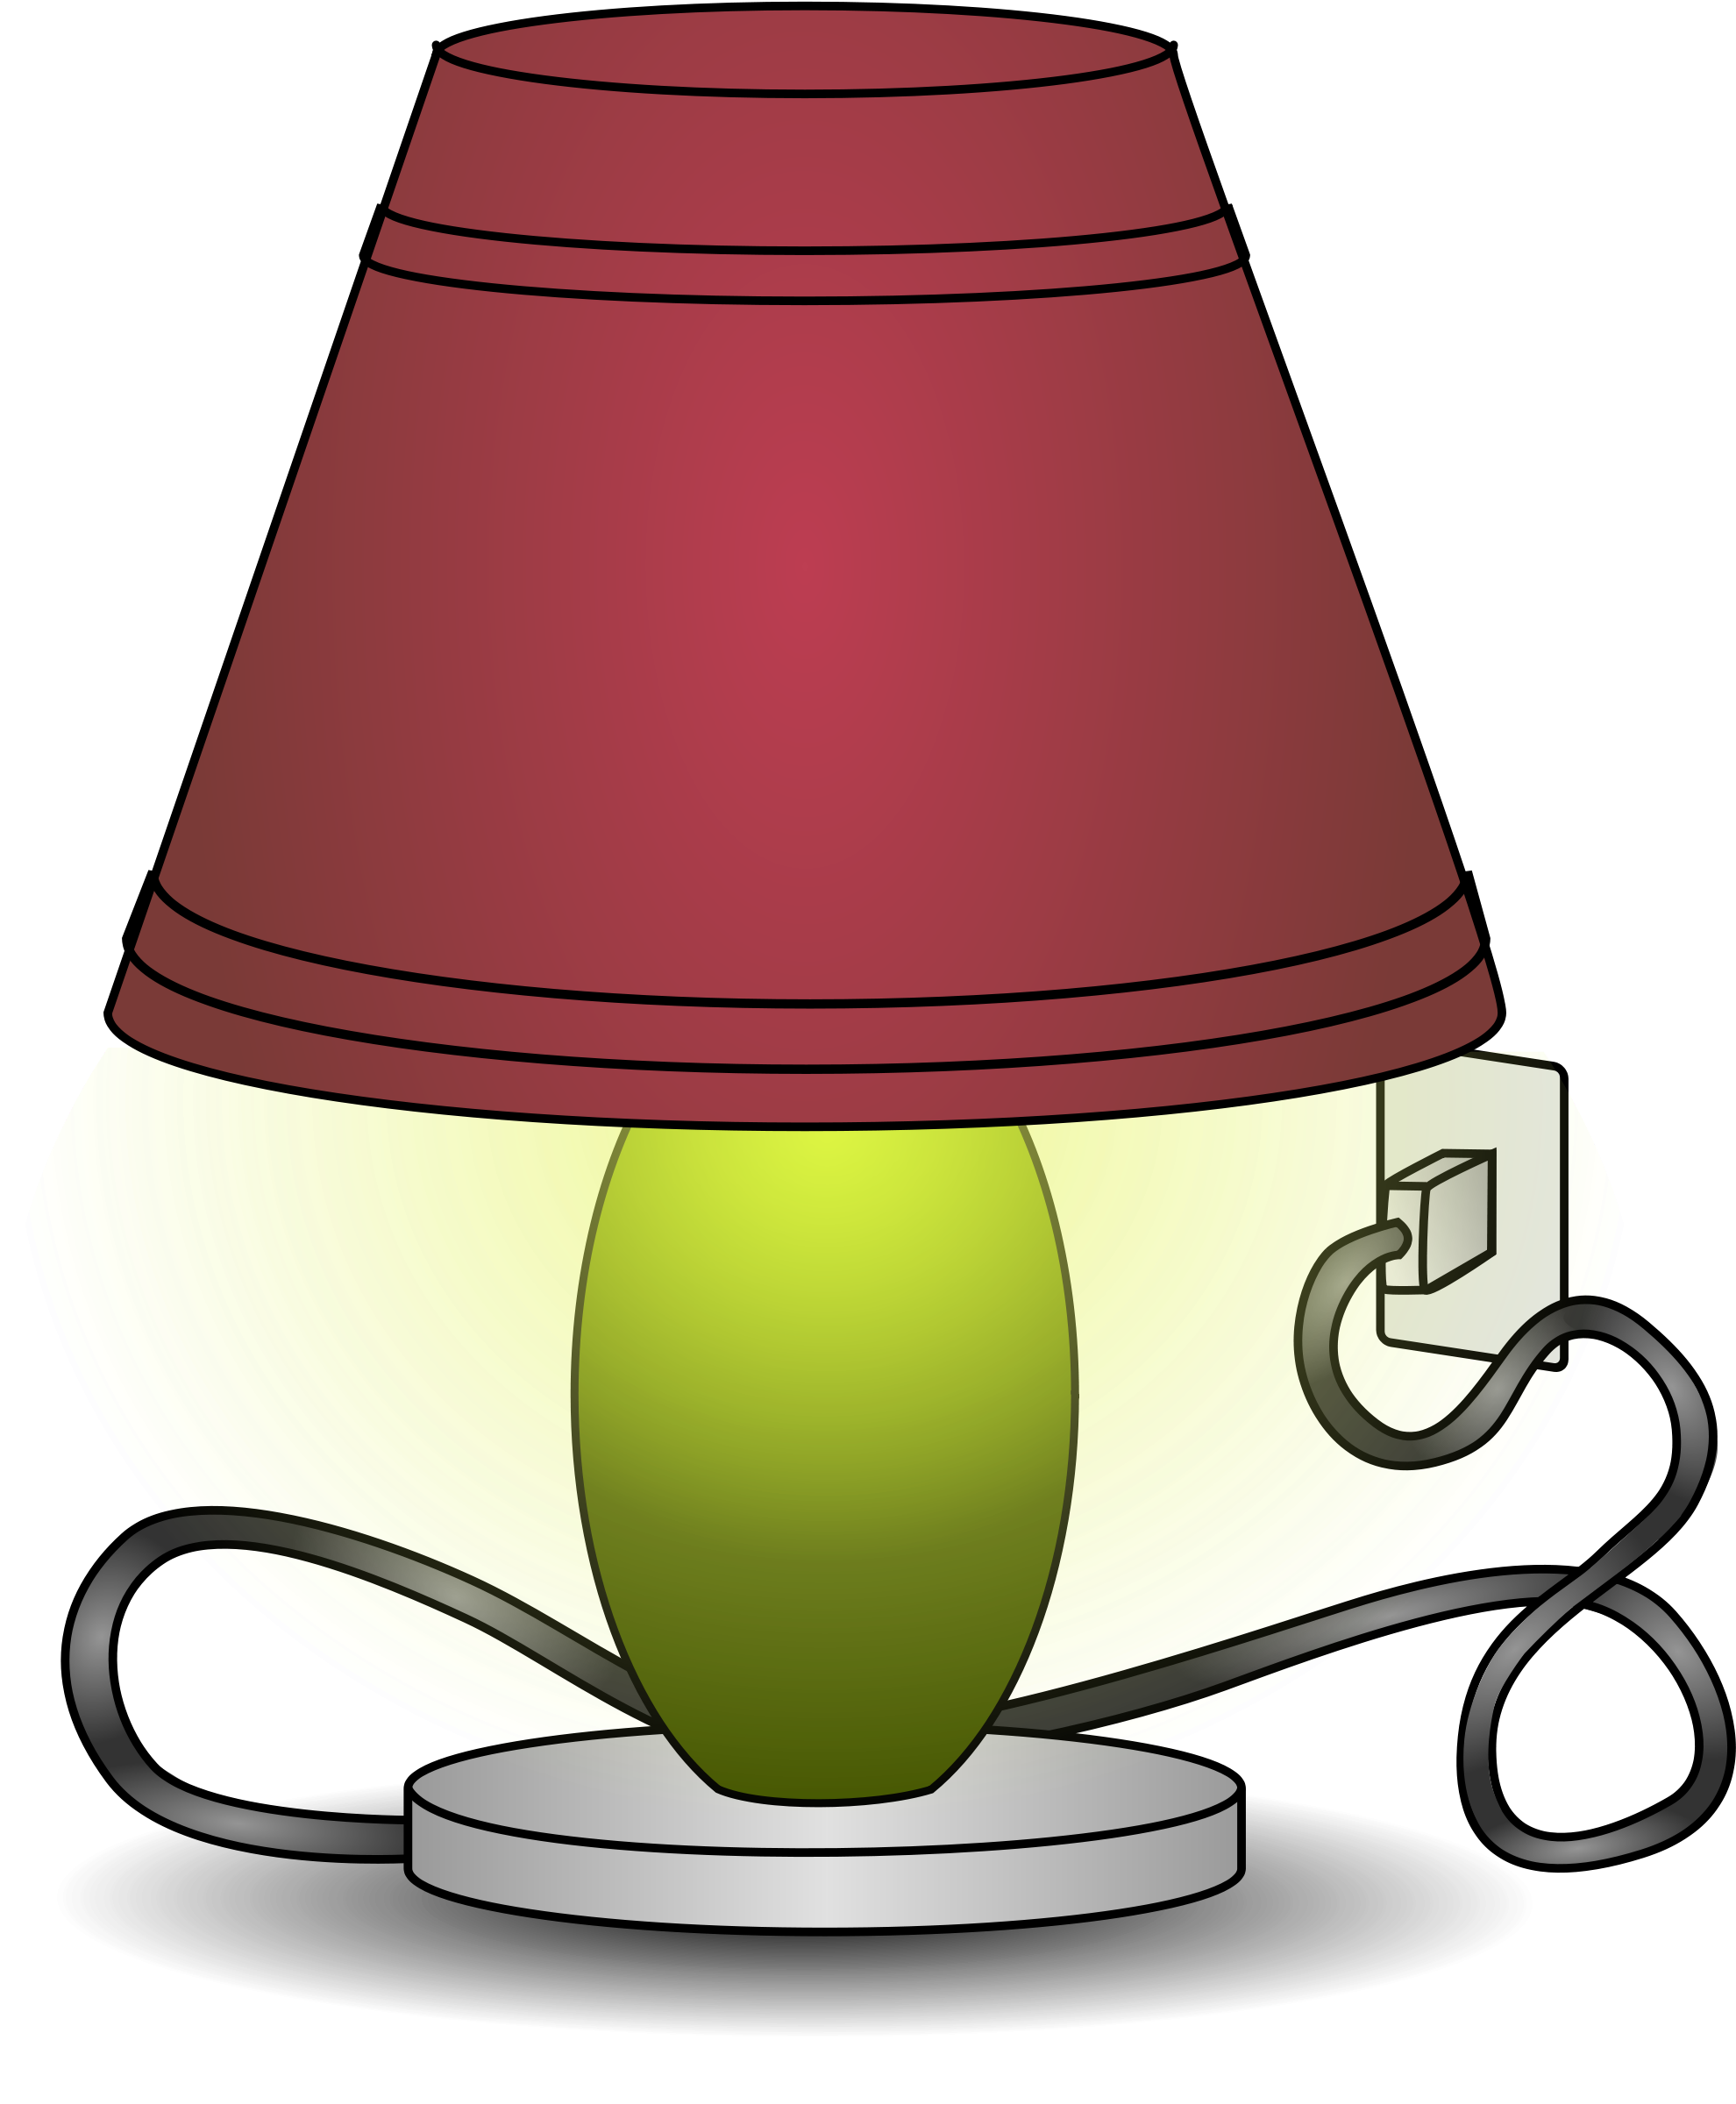 Transparent Png Lamp Background